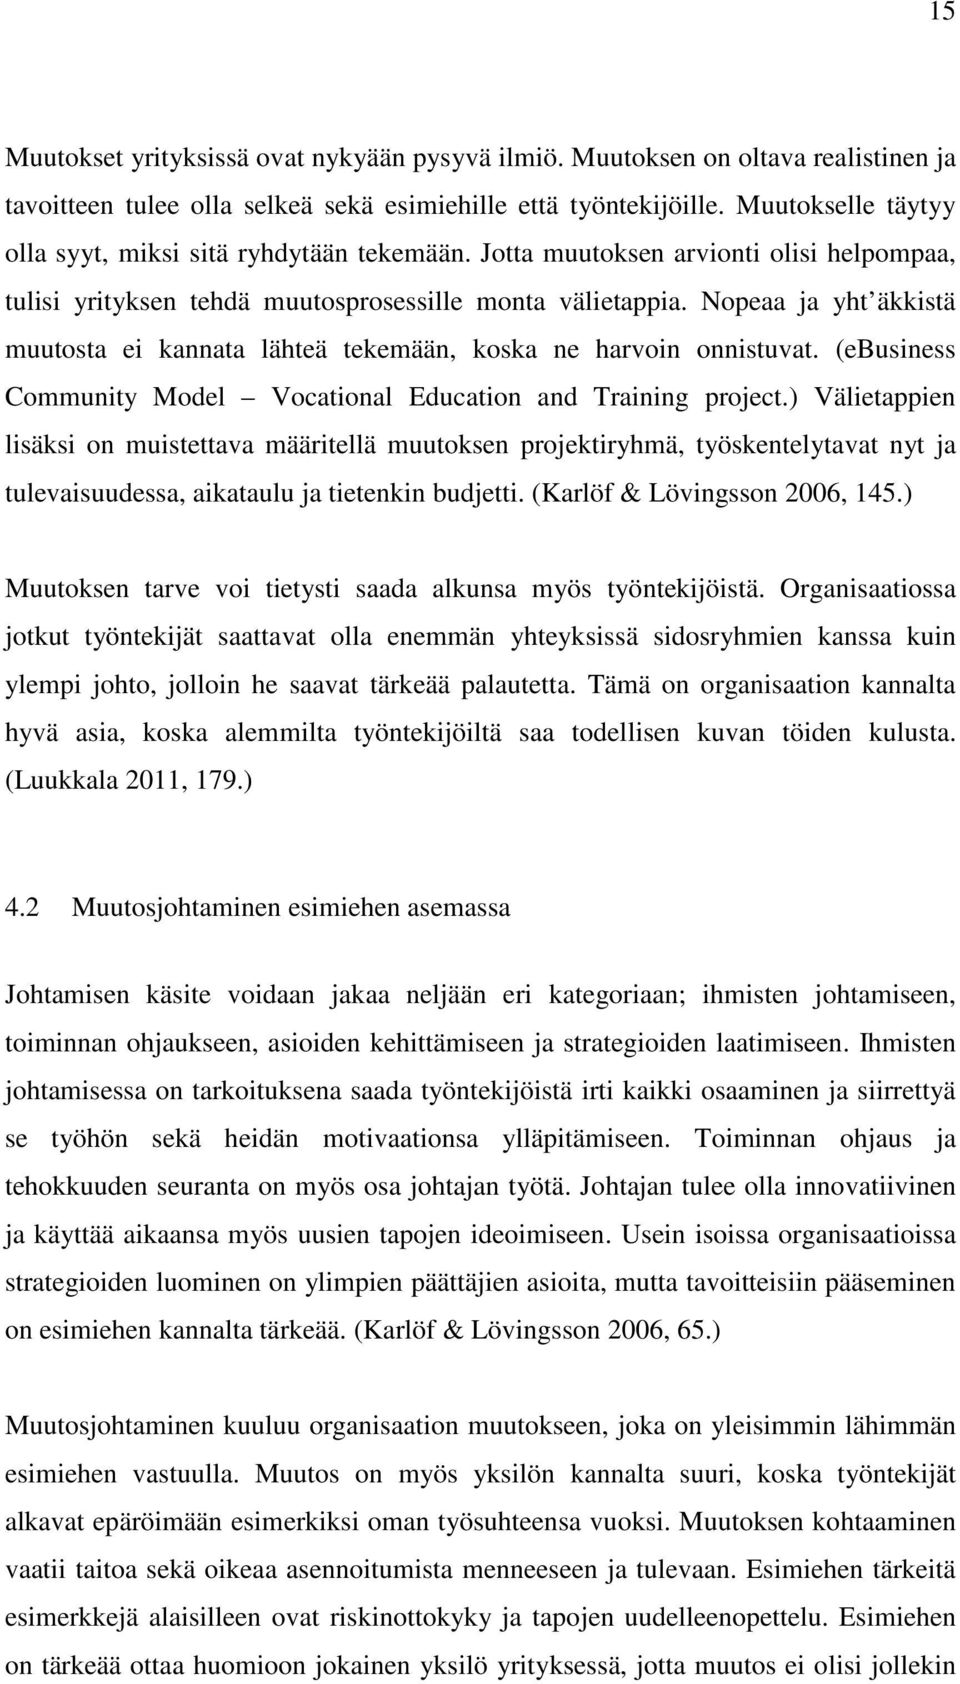 Nopeaa ja yht äkkistä muutosta ei kannata lähteä tekemään, koska ne harvoin onnistuvat. (ebusiness Community Model Vocational Education and Training project.